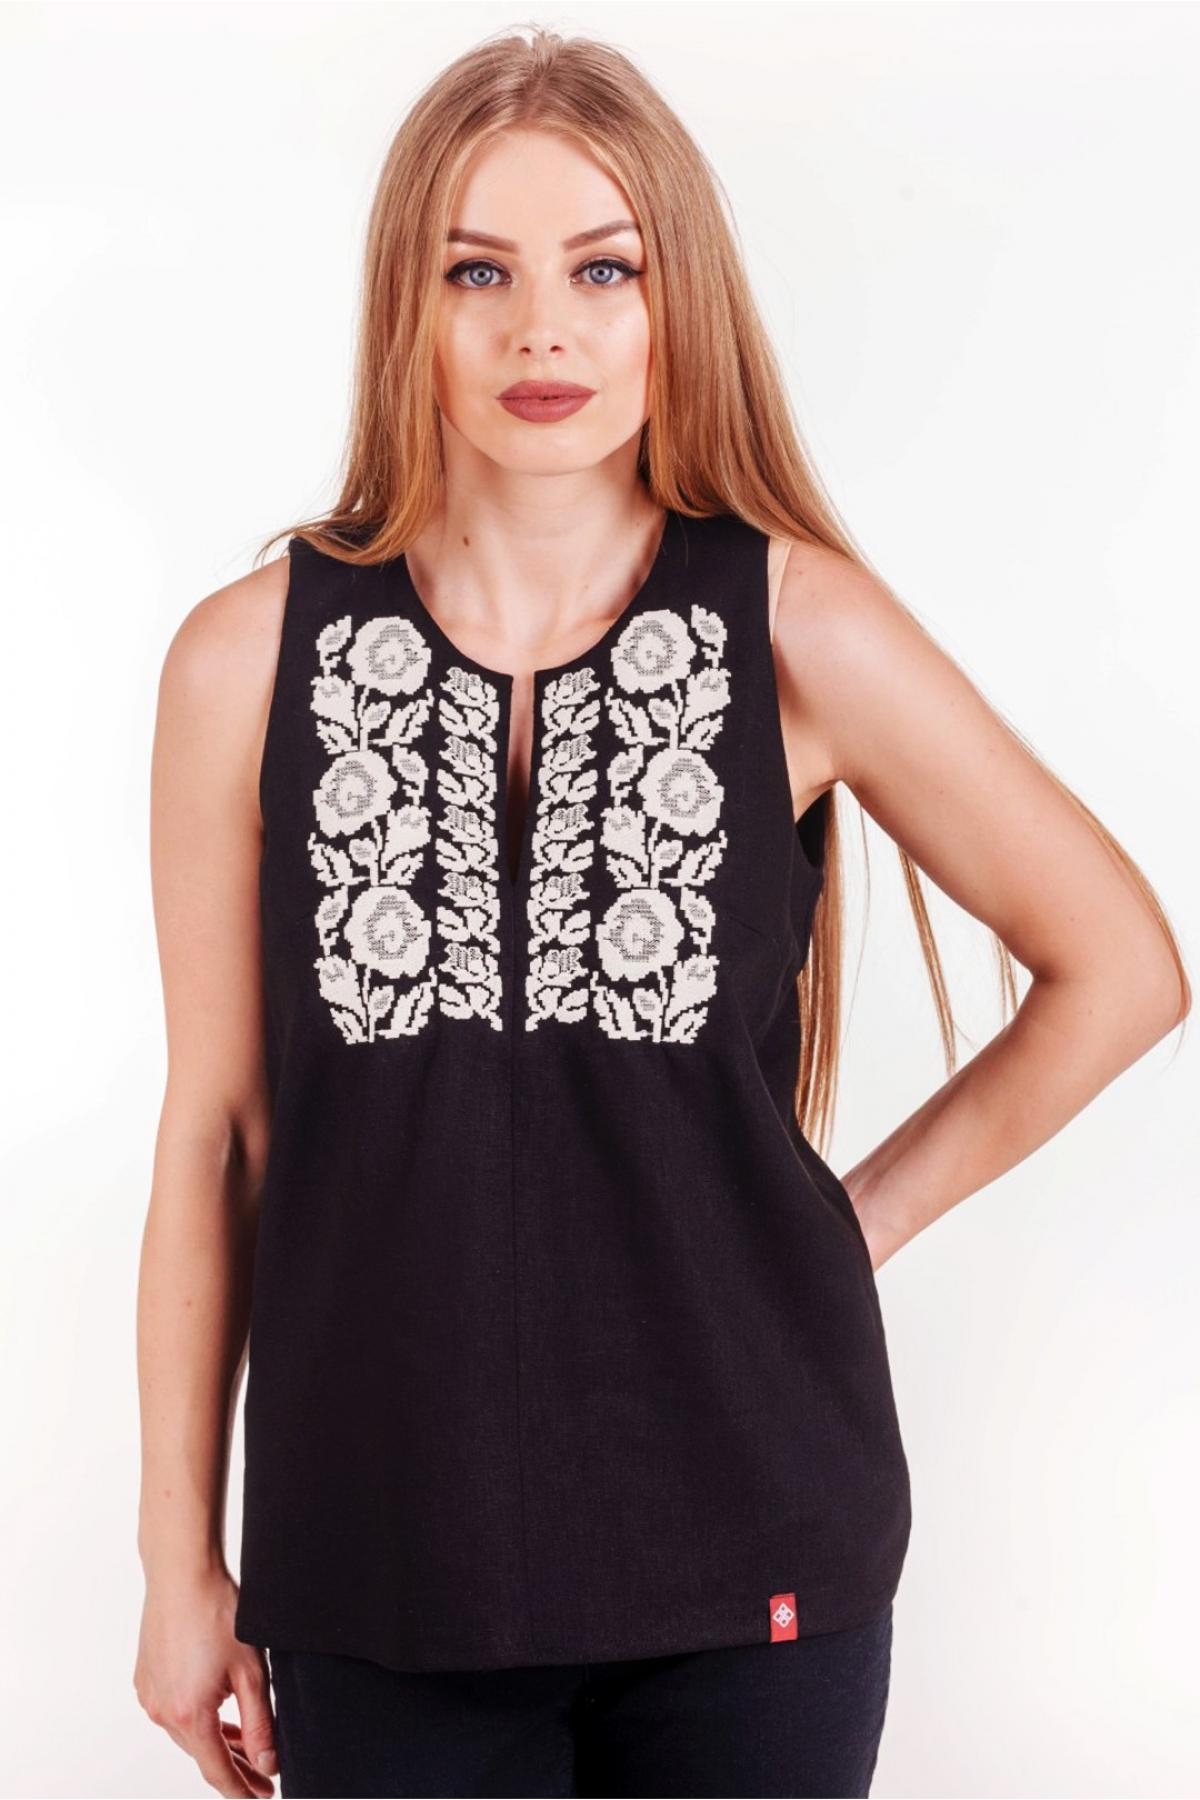 Black sleeveless embroidery. Photo №1. | Narodnyi dim Ukraine